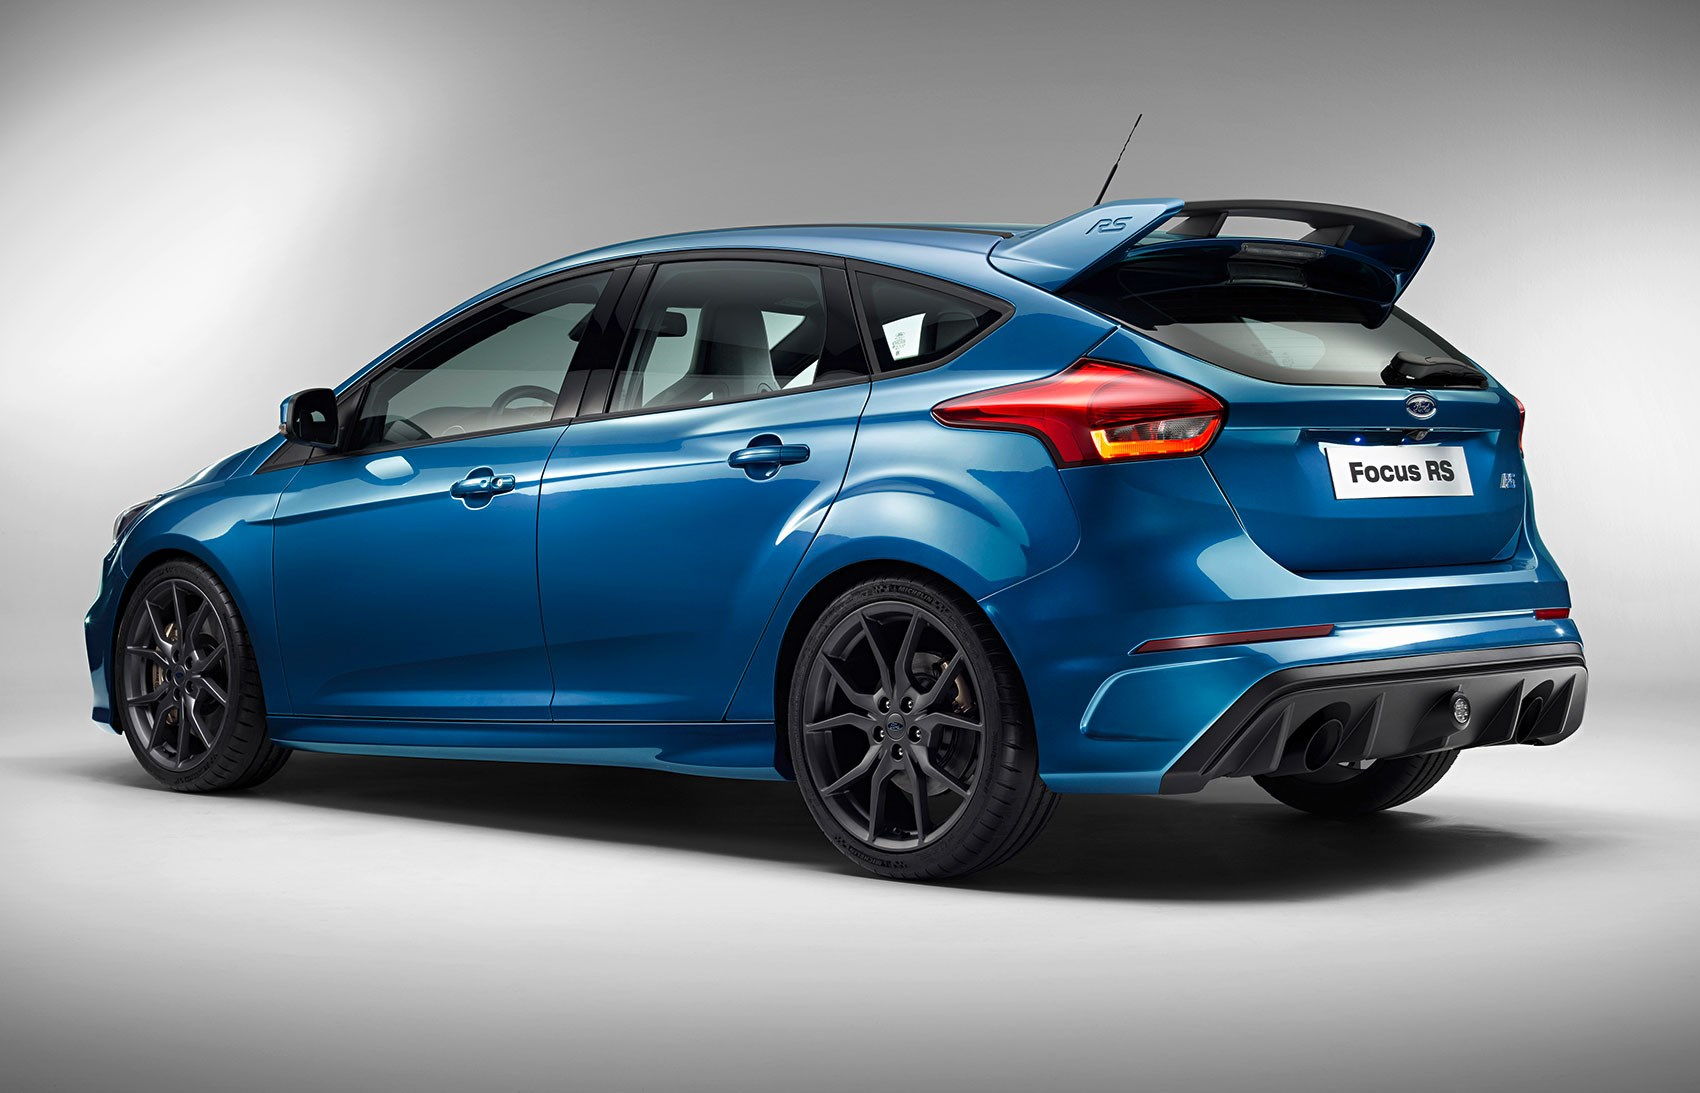 ford focus rs 2016 enters hyper hatch territory with 345bhp confirmed by car magazine. Black Bedroom Furniture Sets. Home Design Ideas